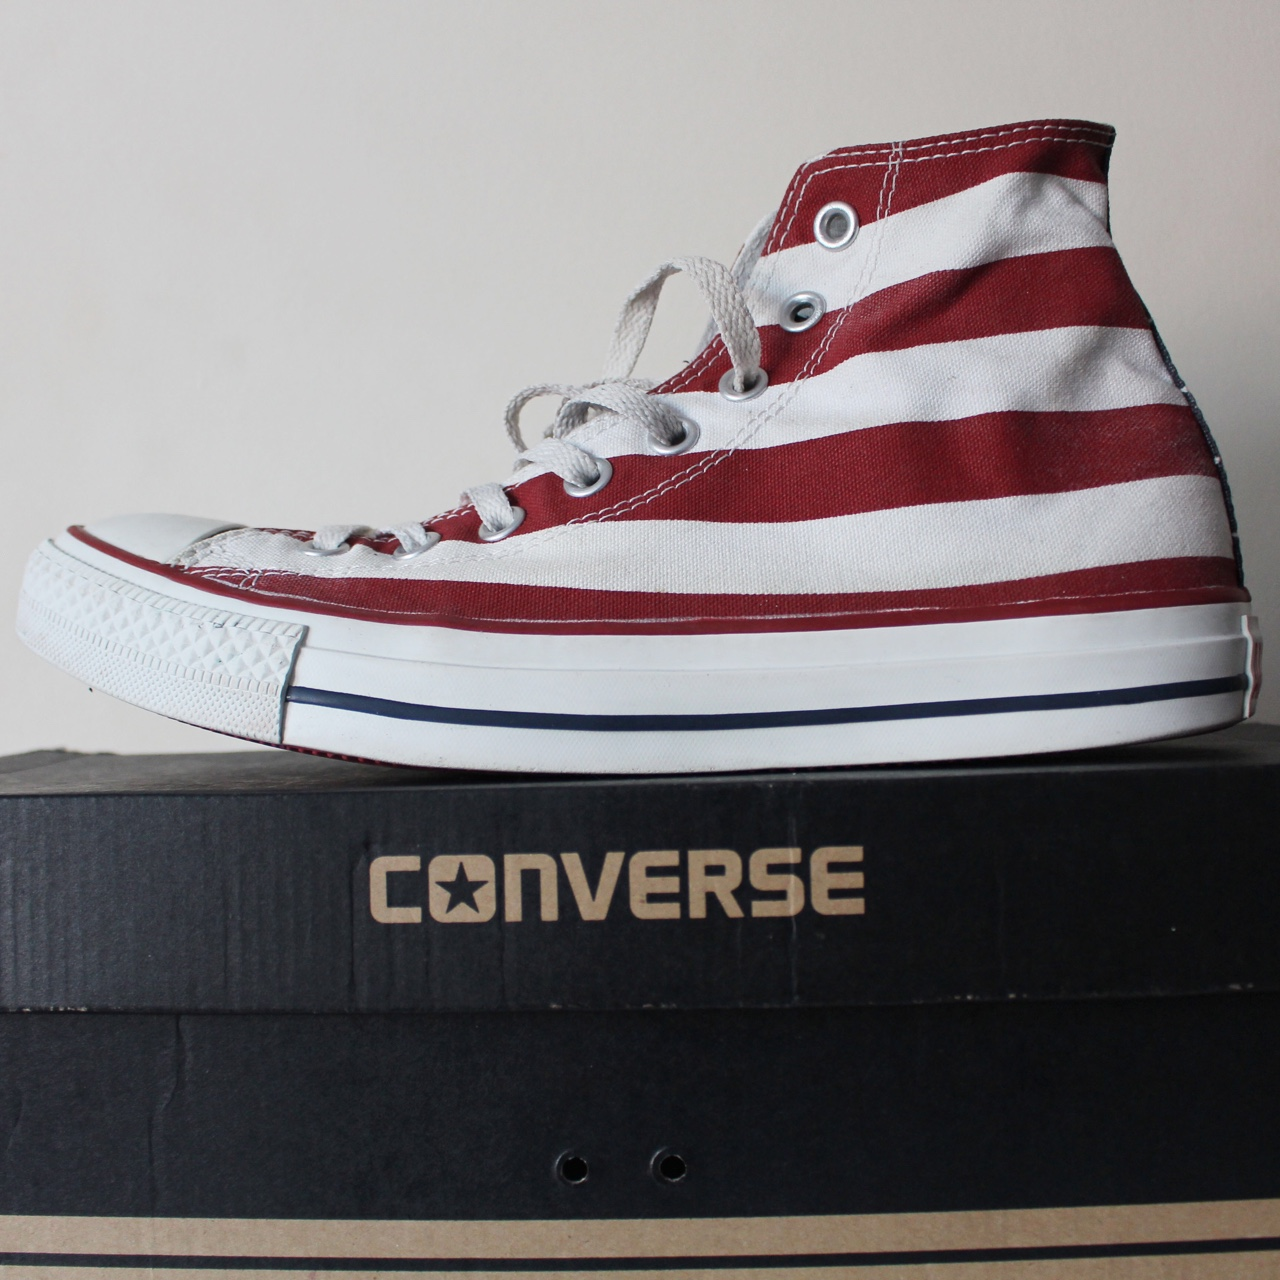 Converse All Stars red, white and blue American flag Depop